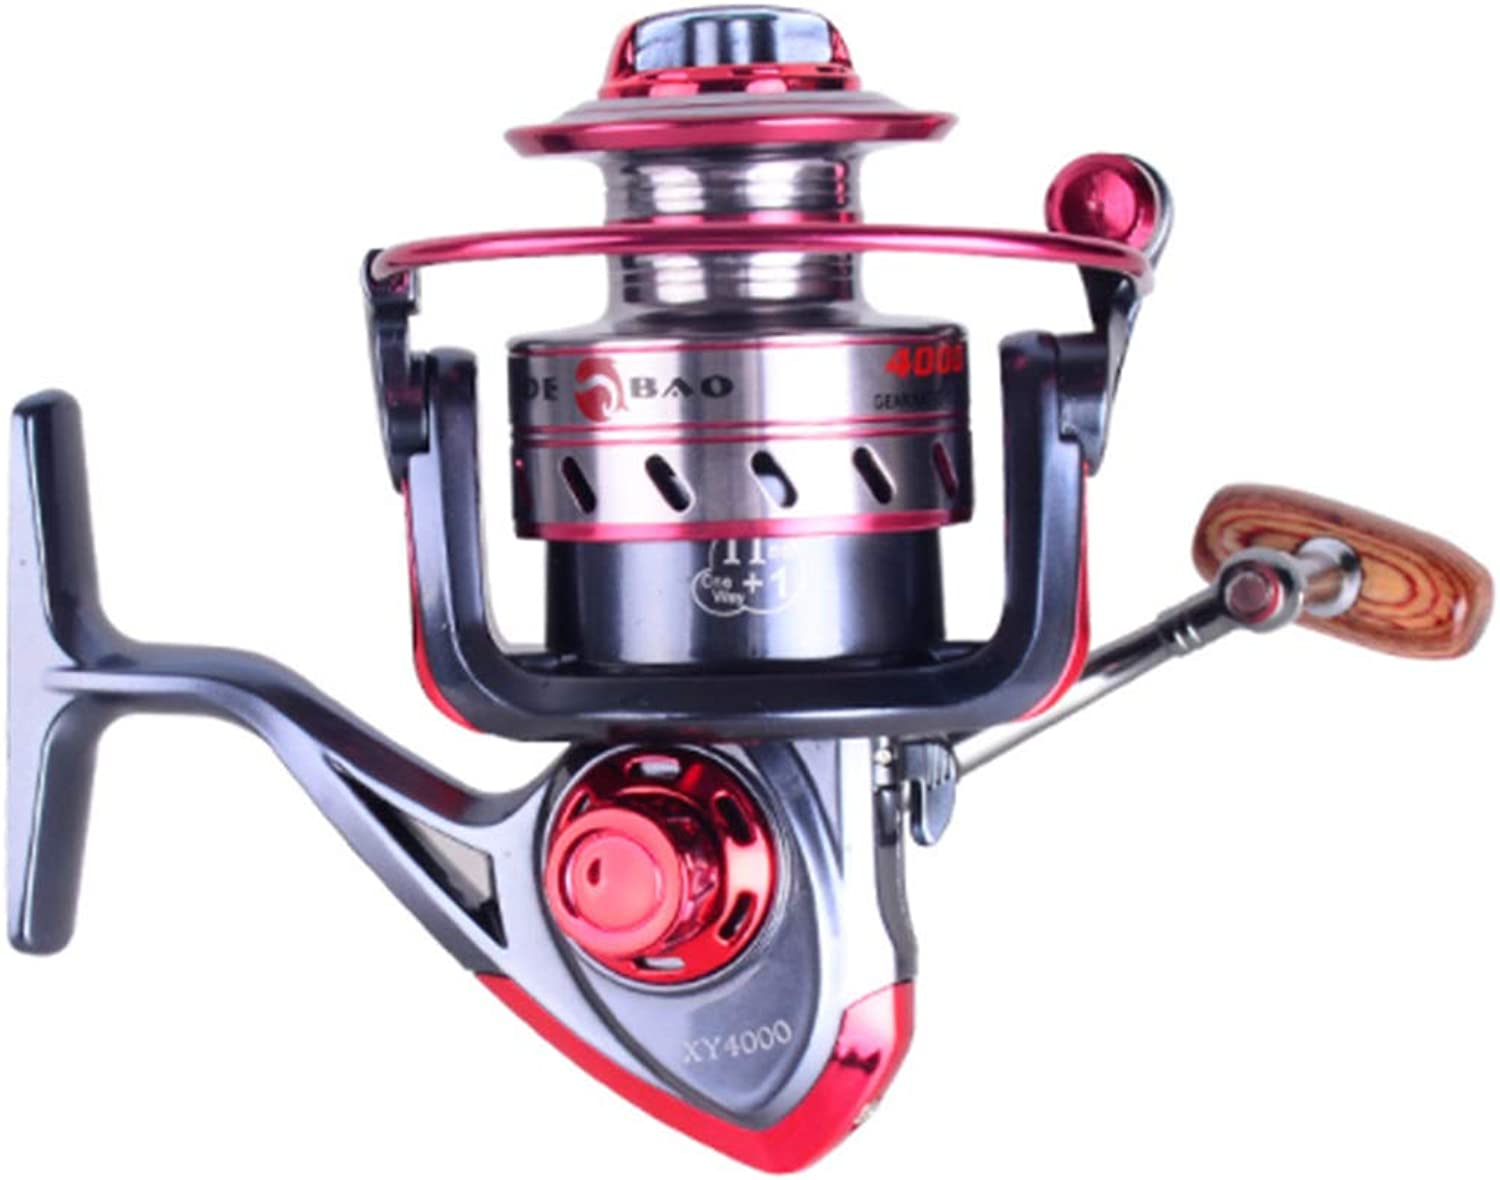 Carriemeow Spinning Fishing Reel 12+1 Bearings Left Right Interchangeable Handle for Saltwater Freshwater Fishing with Double Drag Brake System